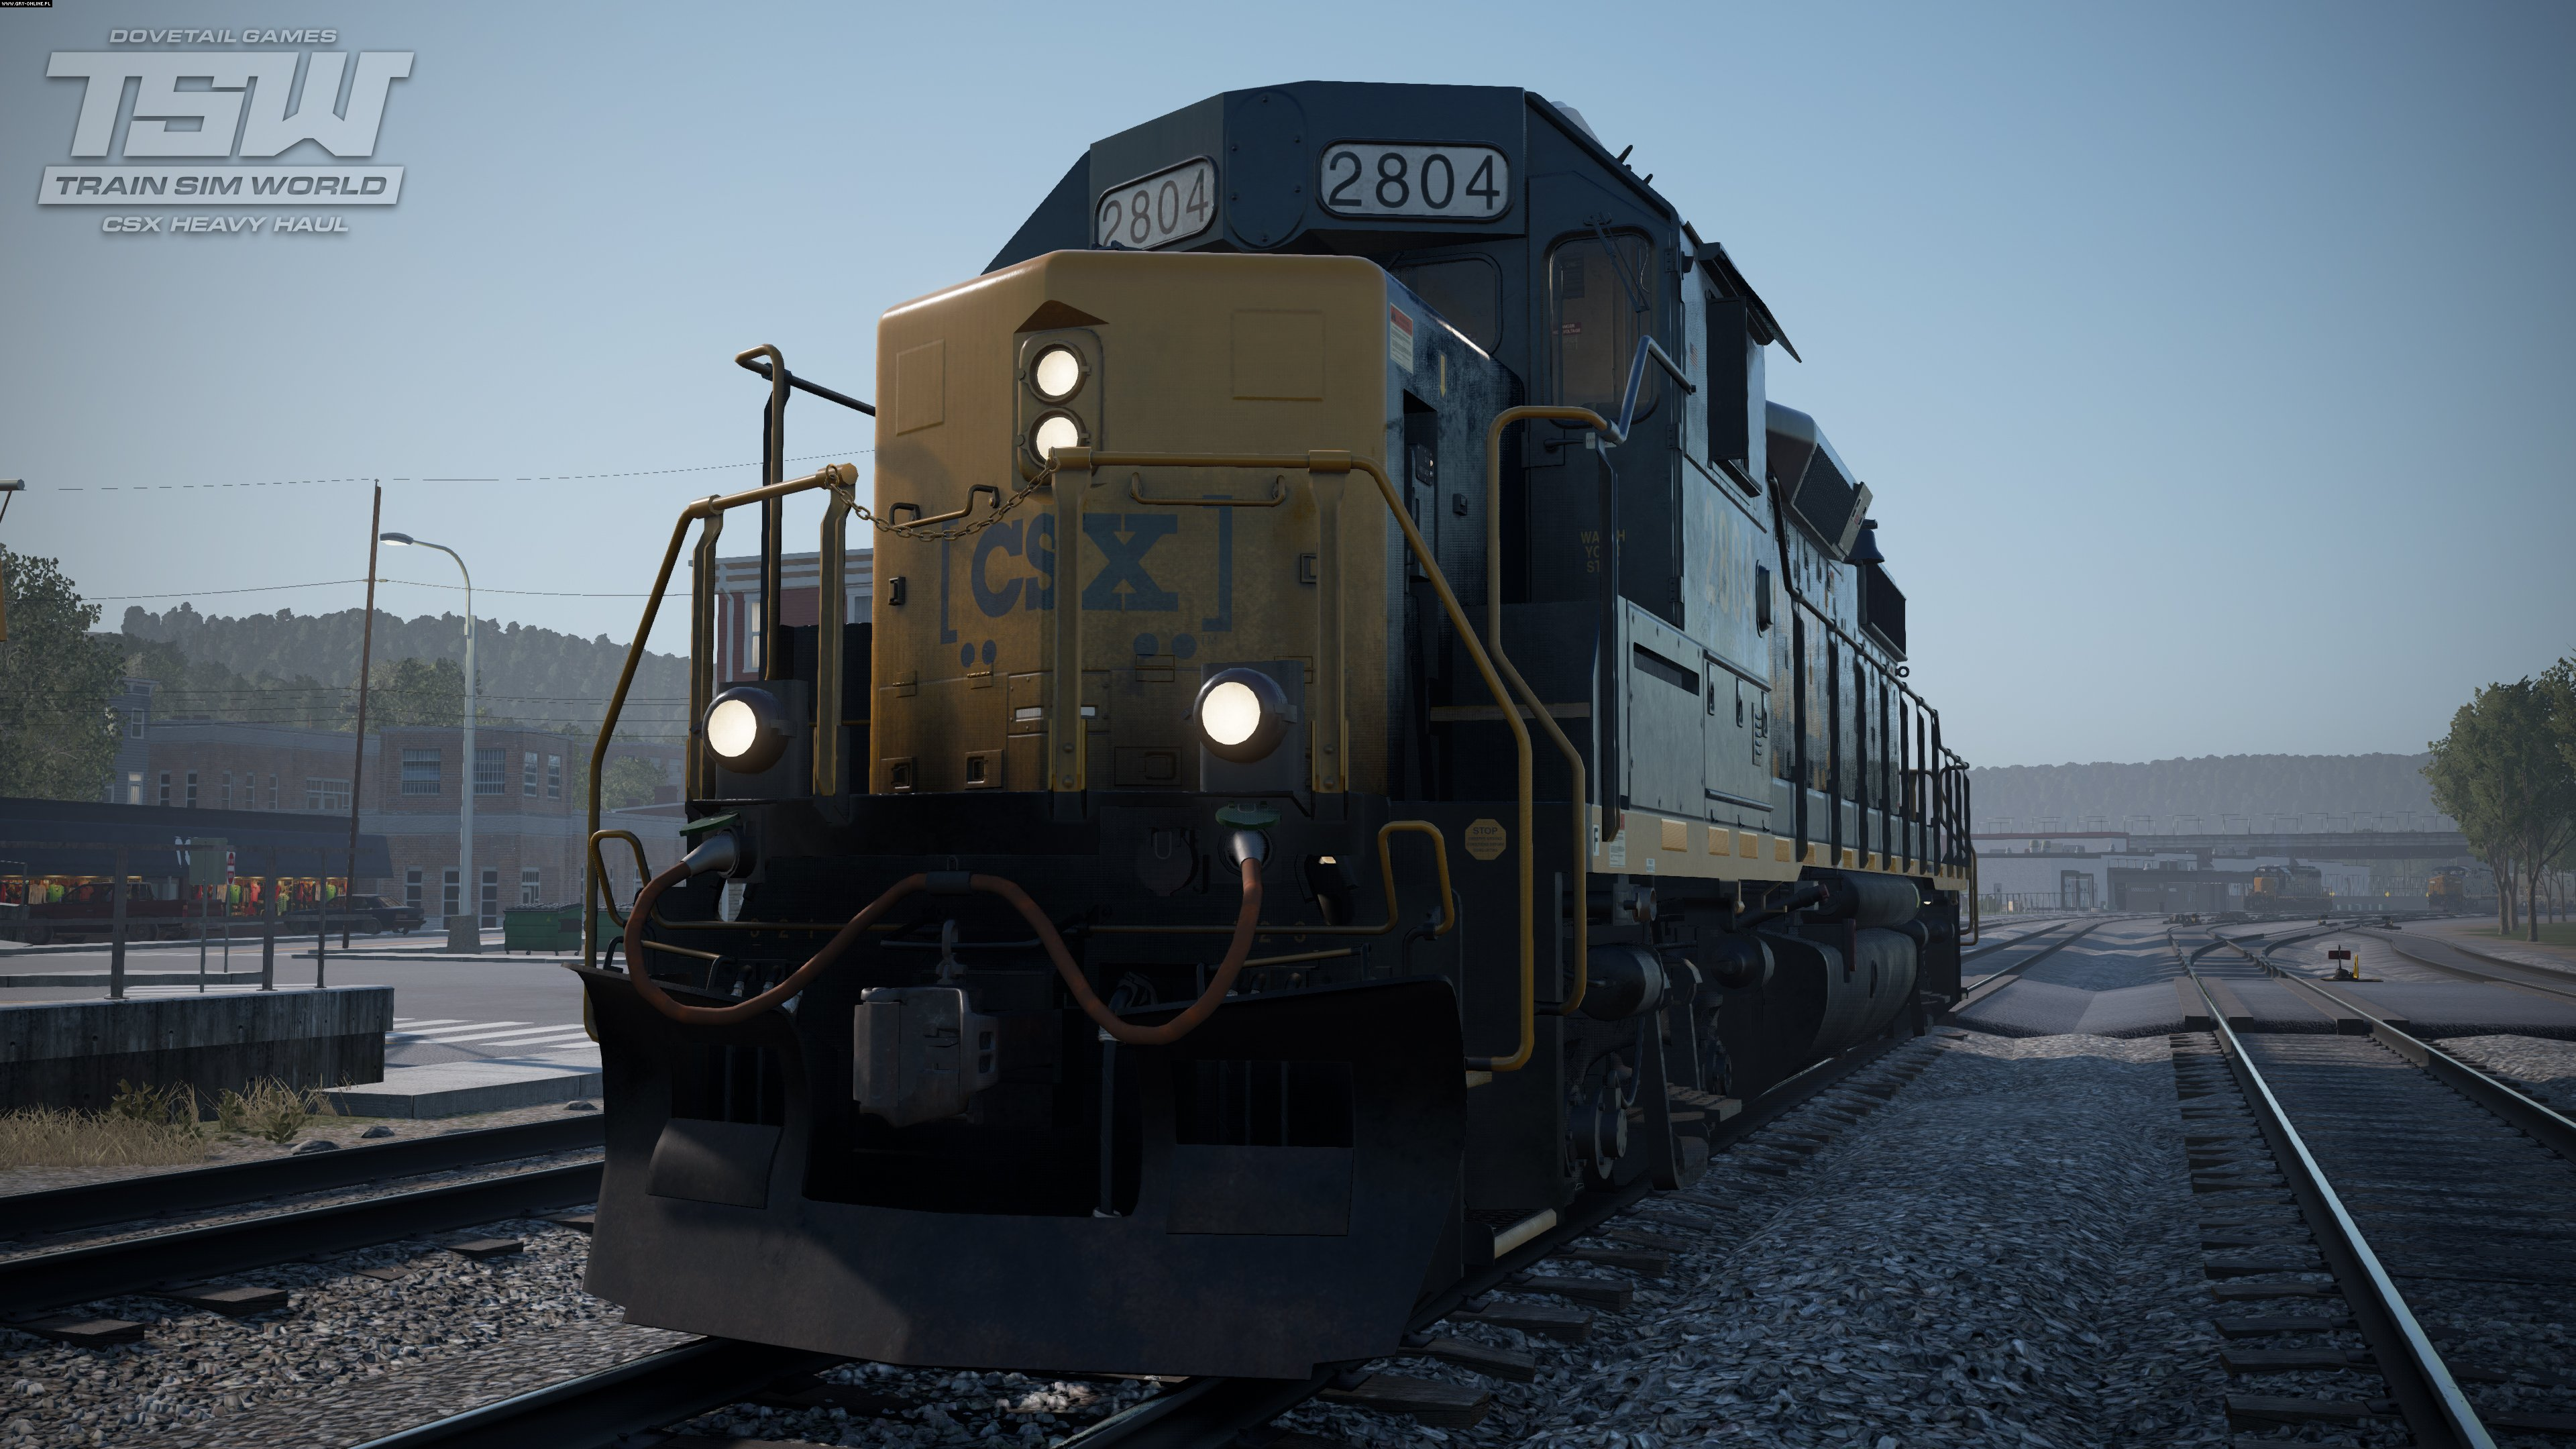 Train Sim World: CSX Heavy Haul PC, XONE Games Image 7/8, Dovetail Games/Rail Simulator Developments